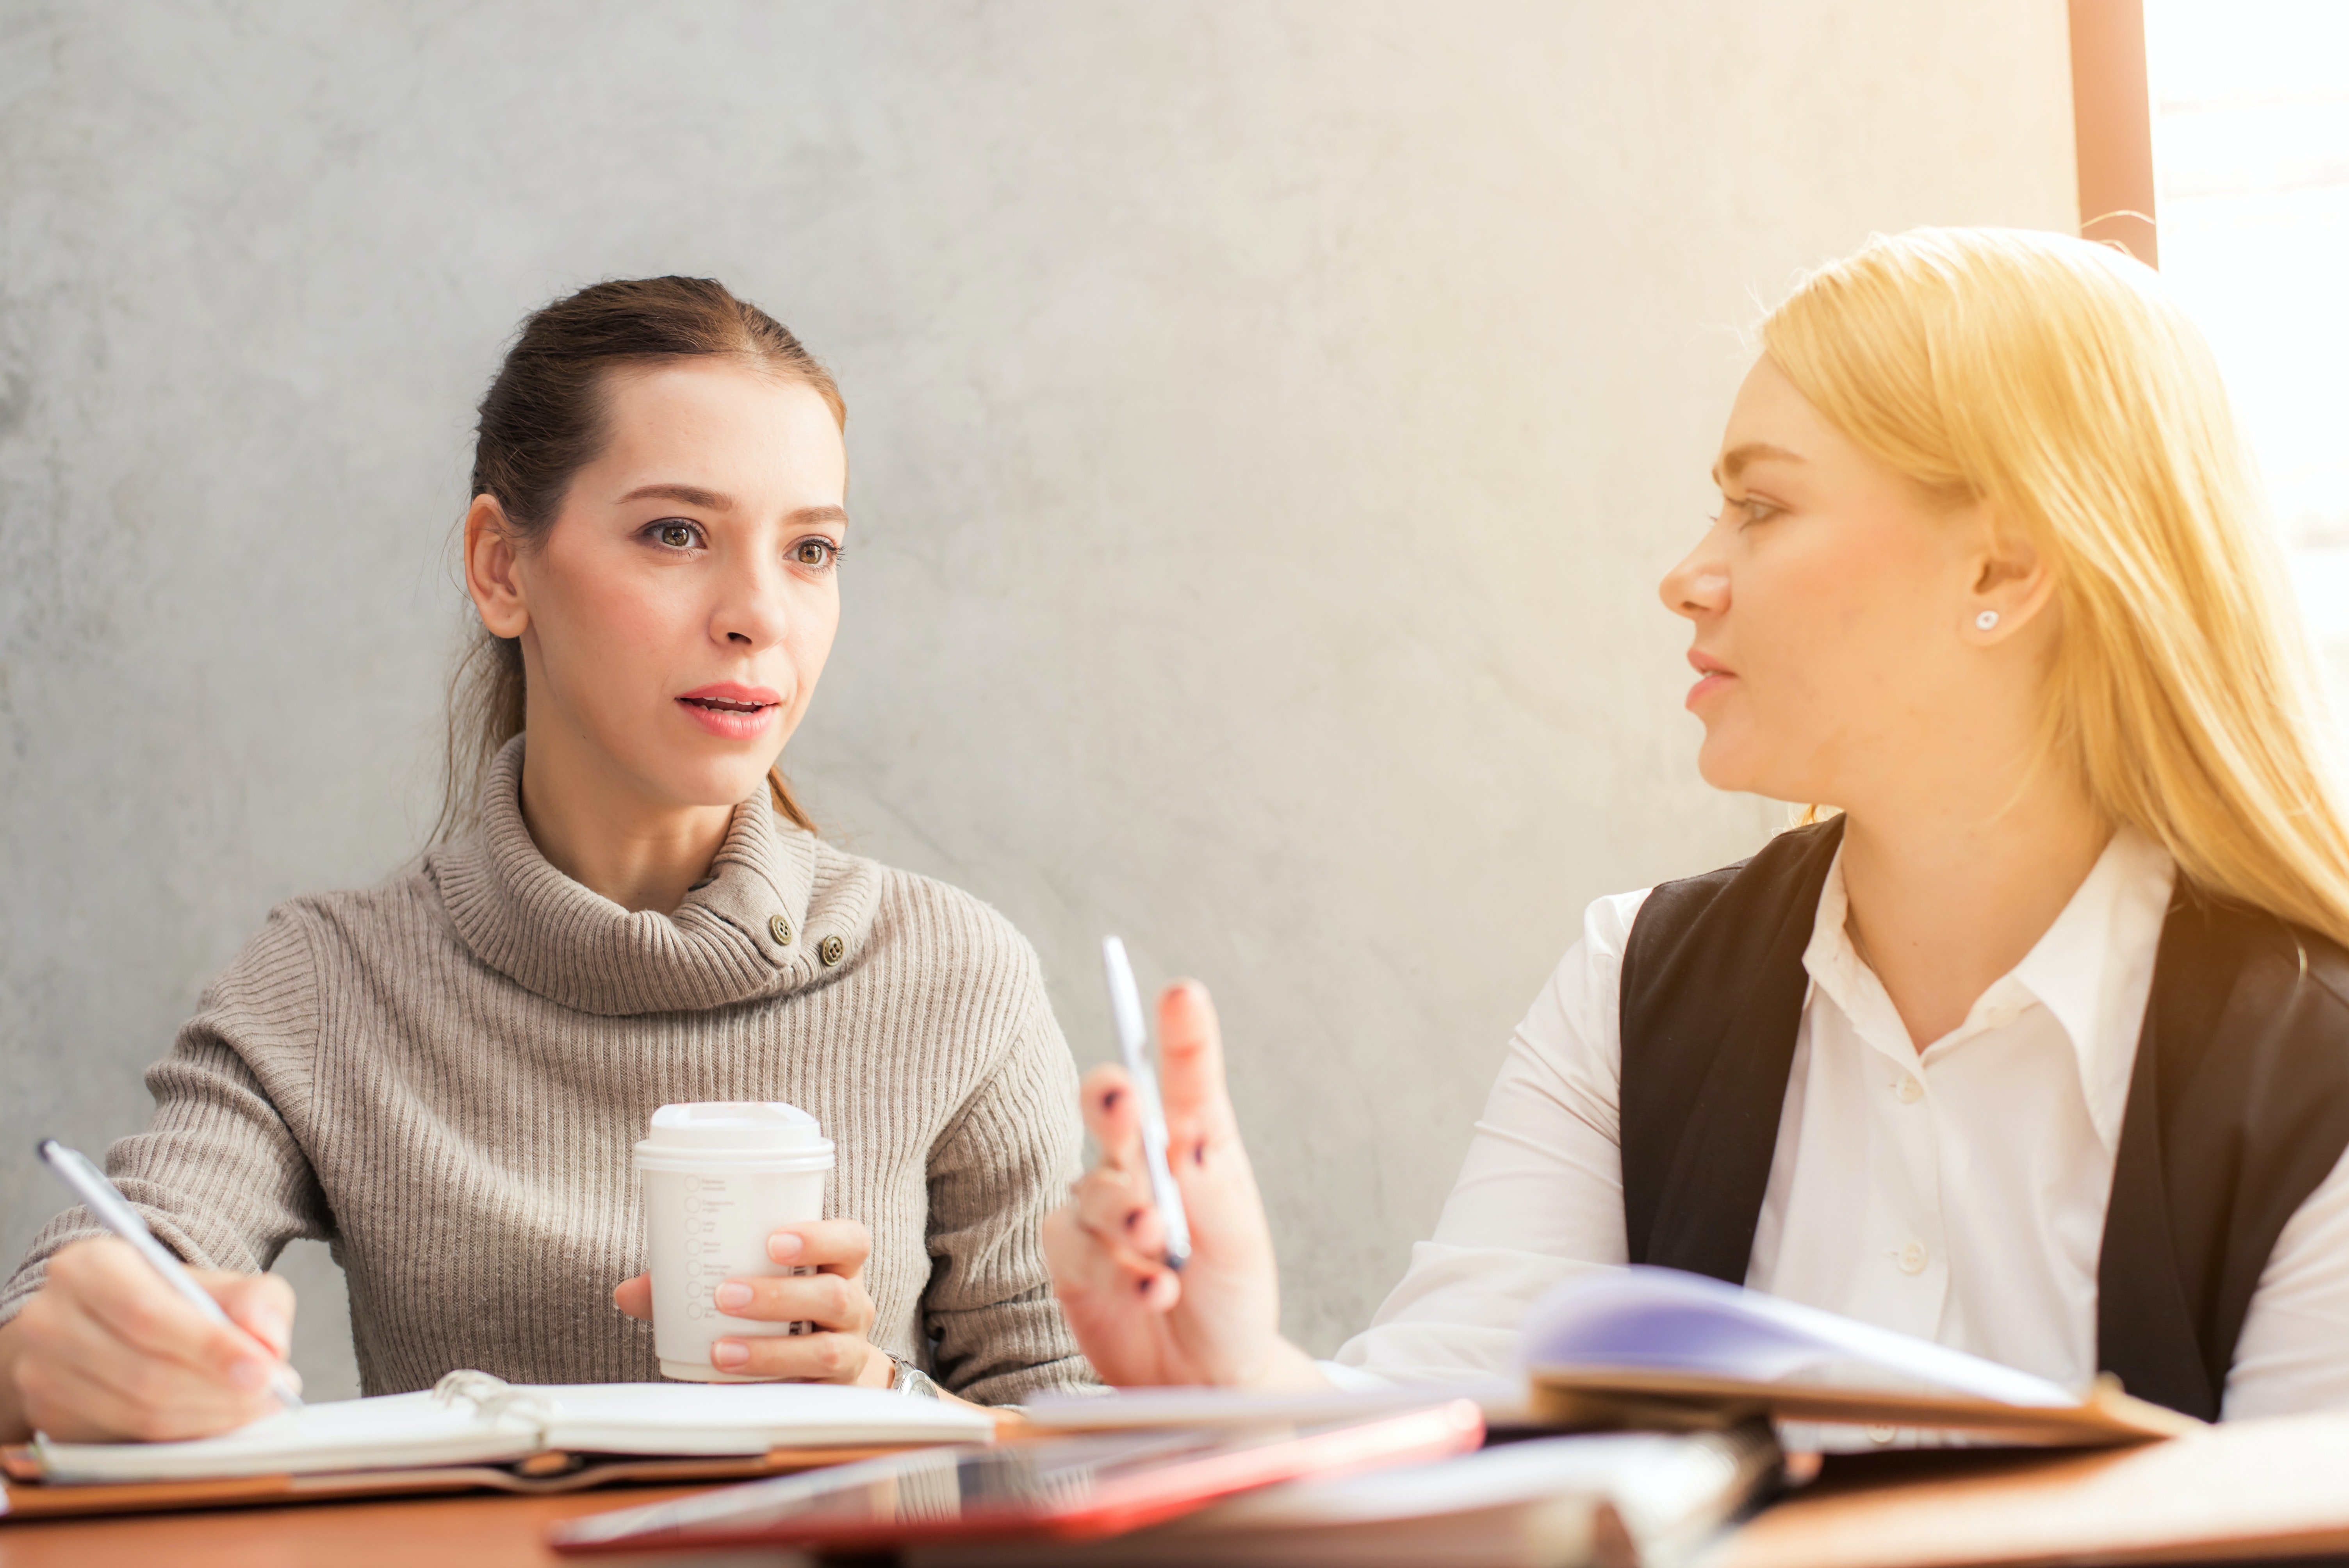 8 Career Change Tips and Best Practices